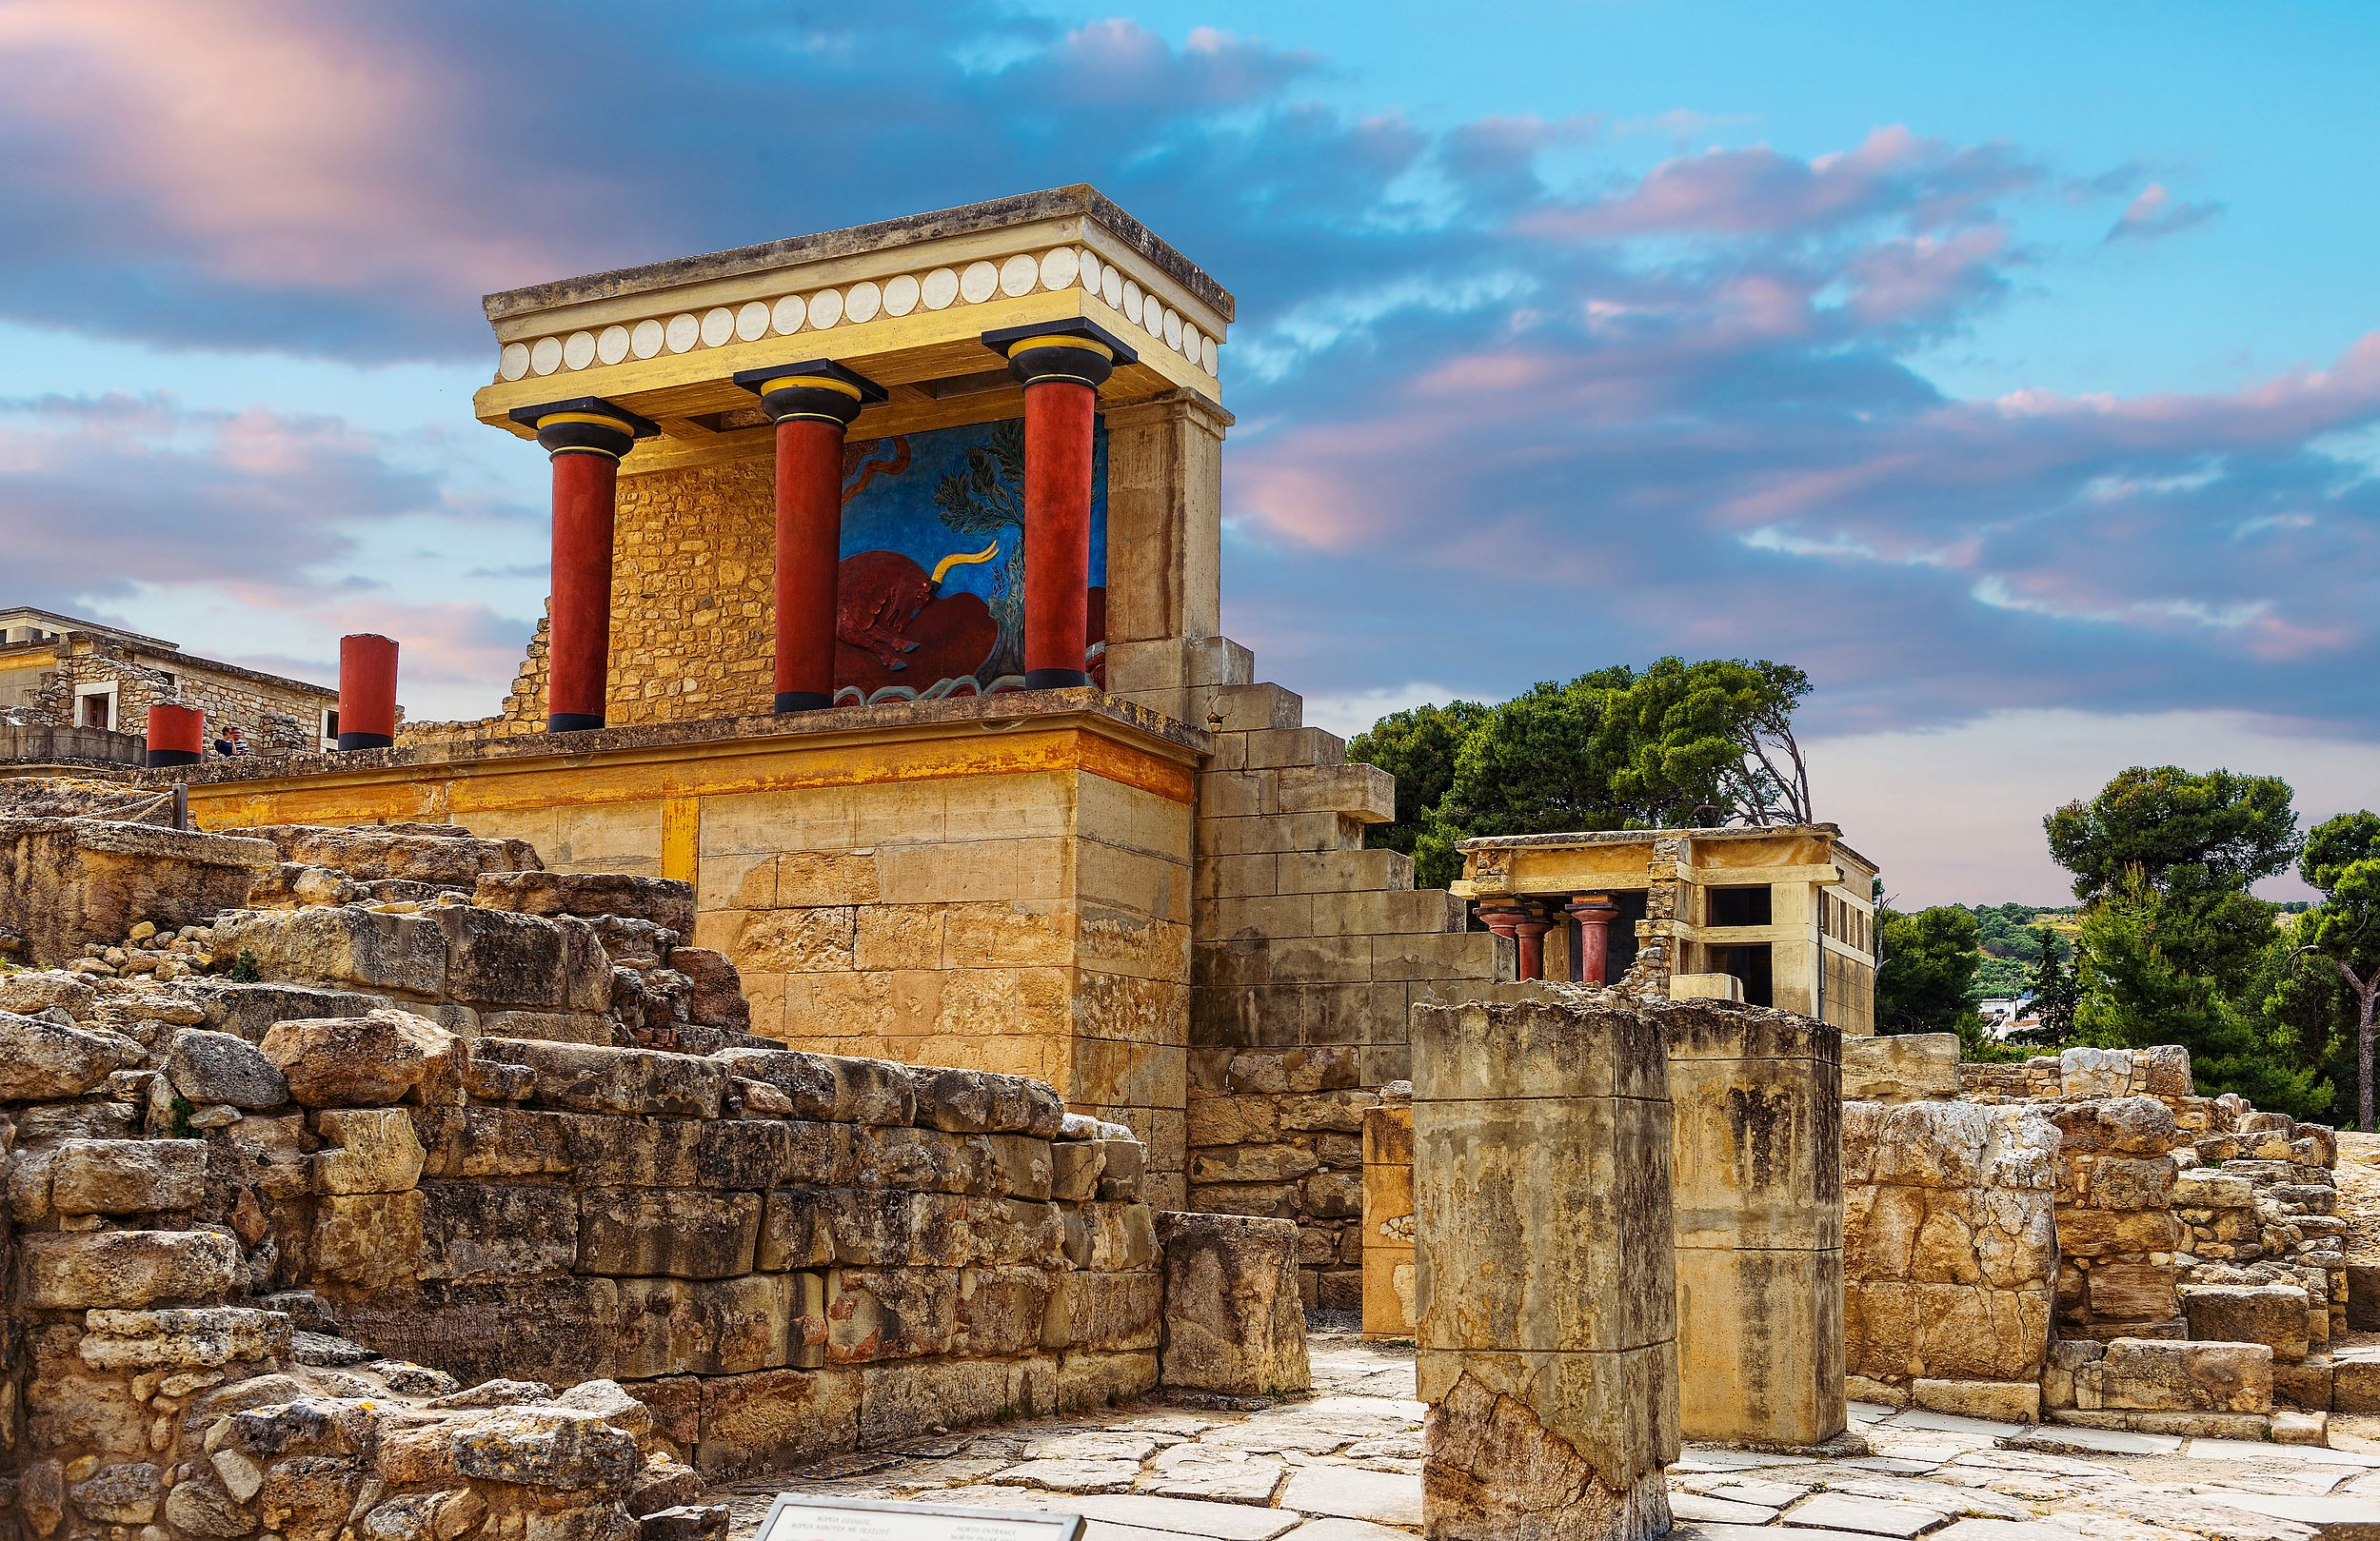 From Heraklion: Full-Day Knossos & Heraklion Tour Guided English and German